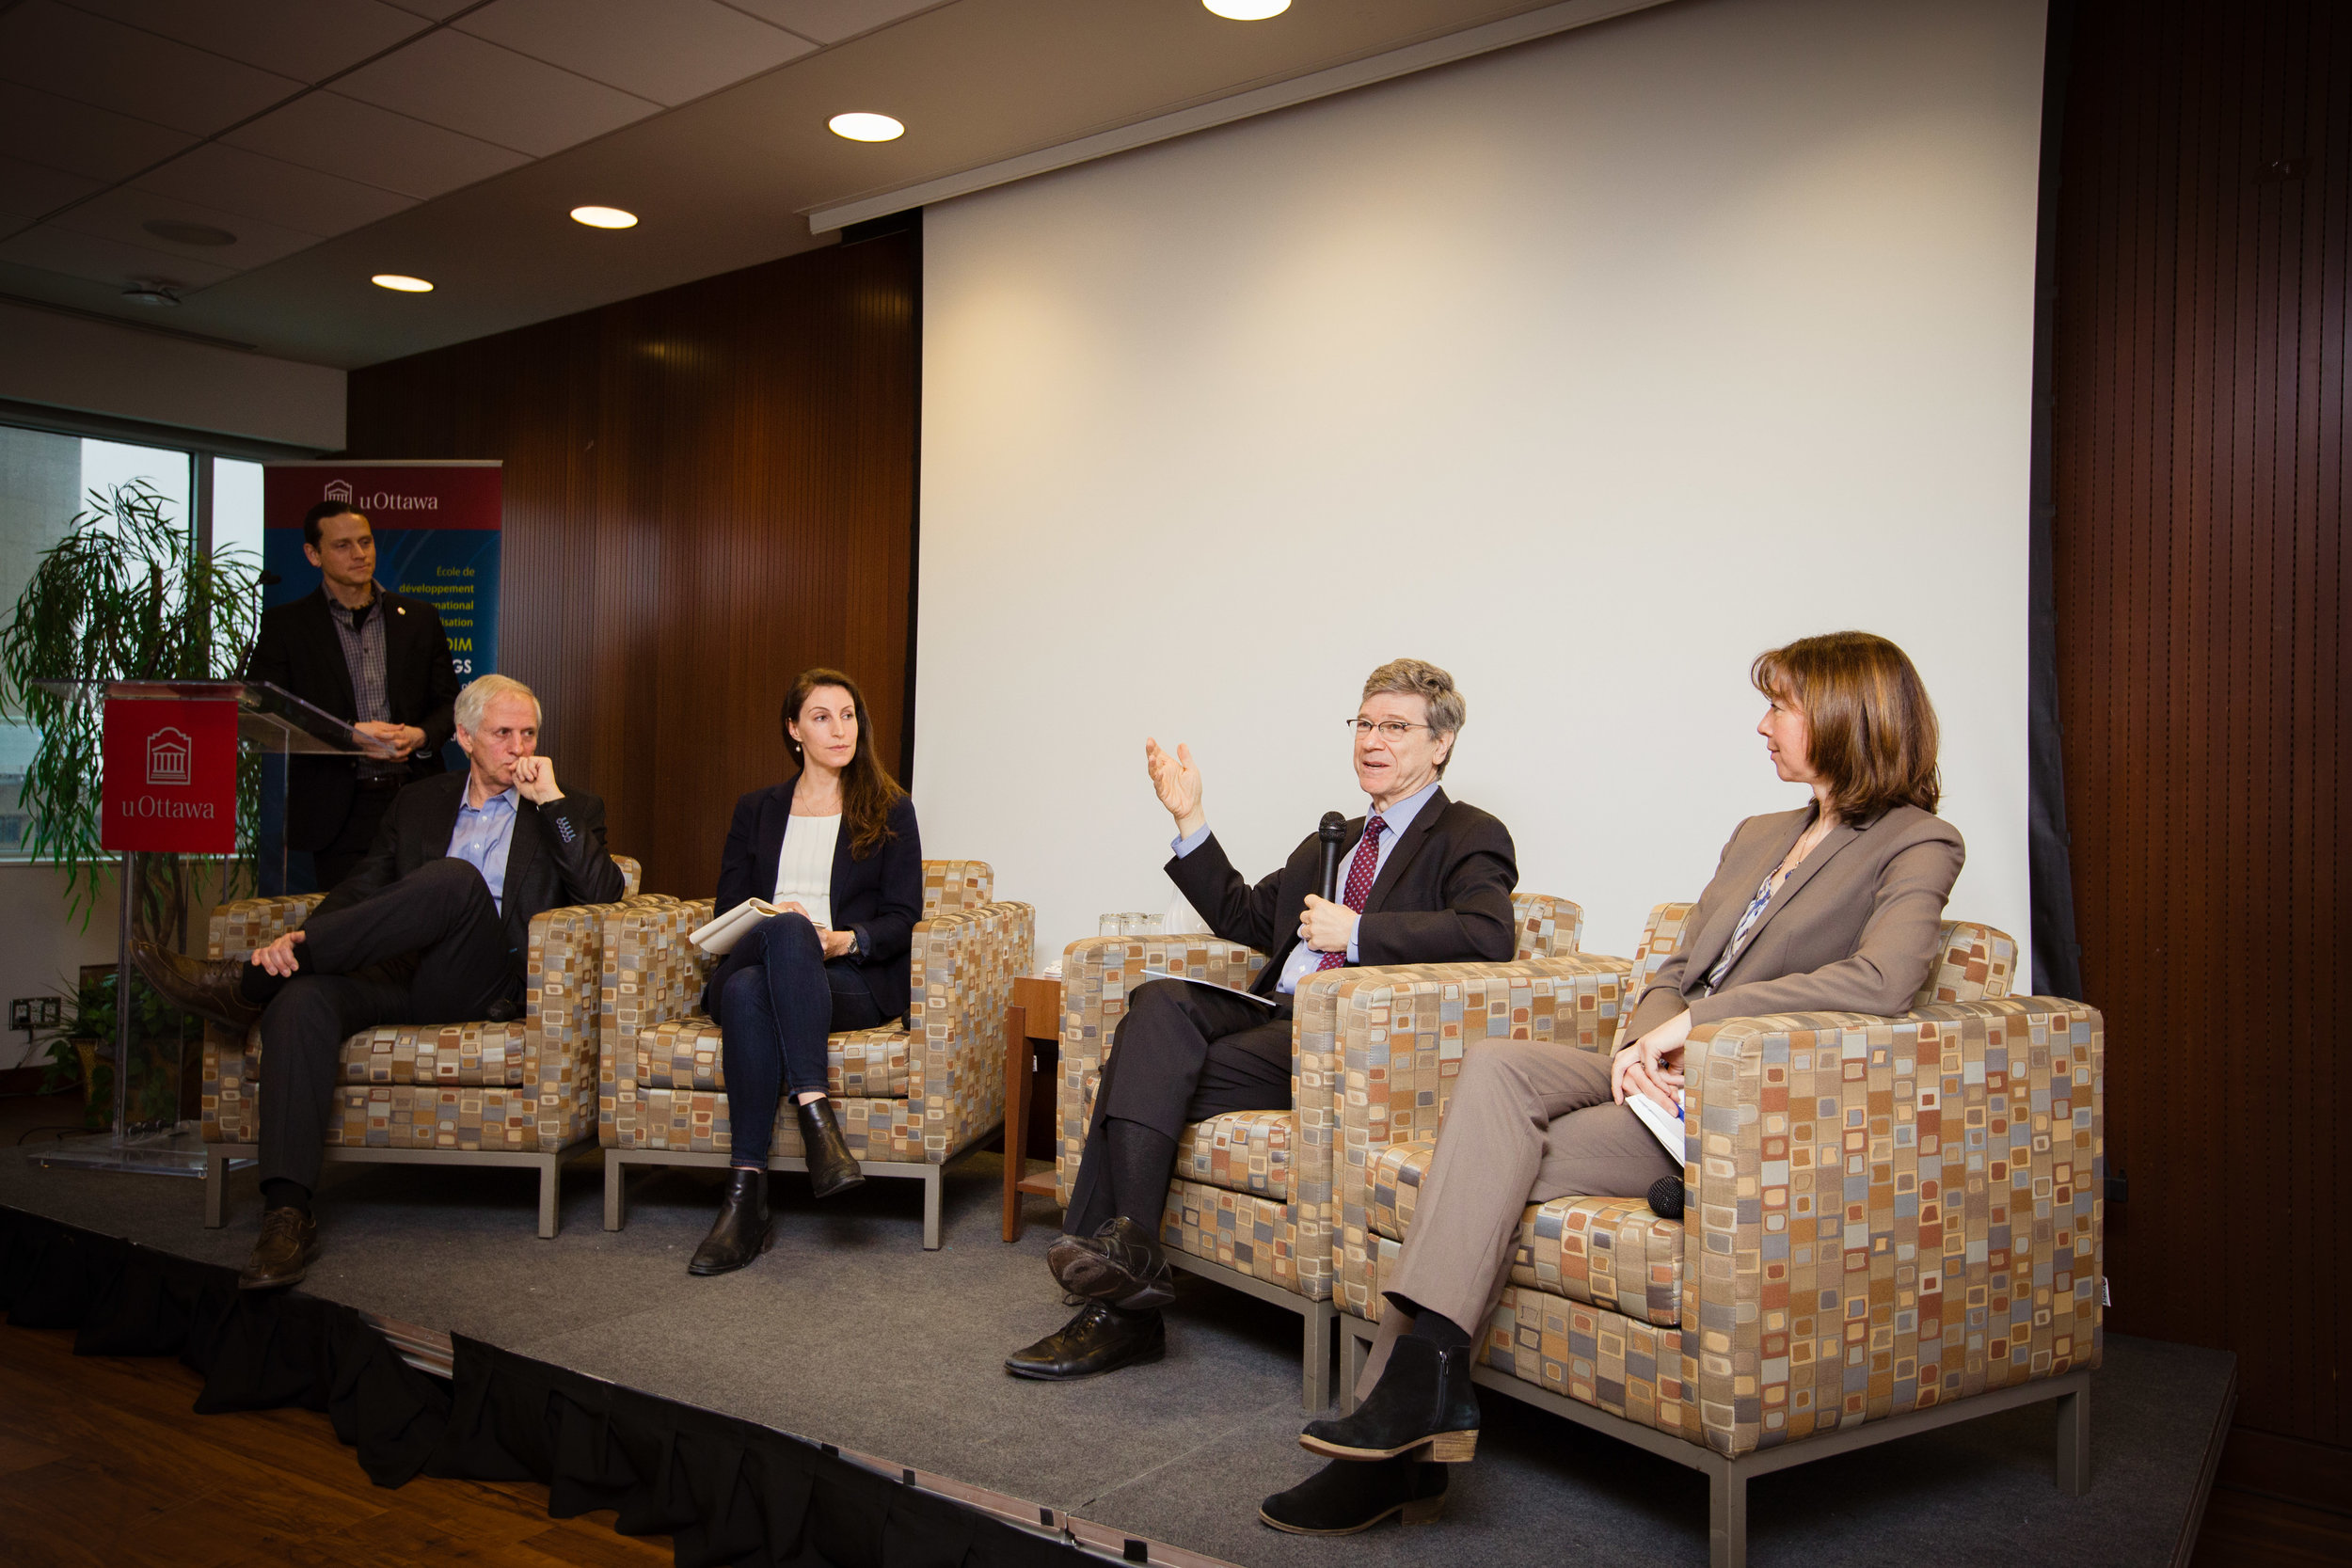 20180404-BF-JEFF-SACHS-LECTURE-073.jpg